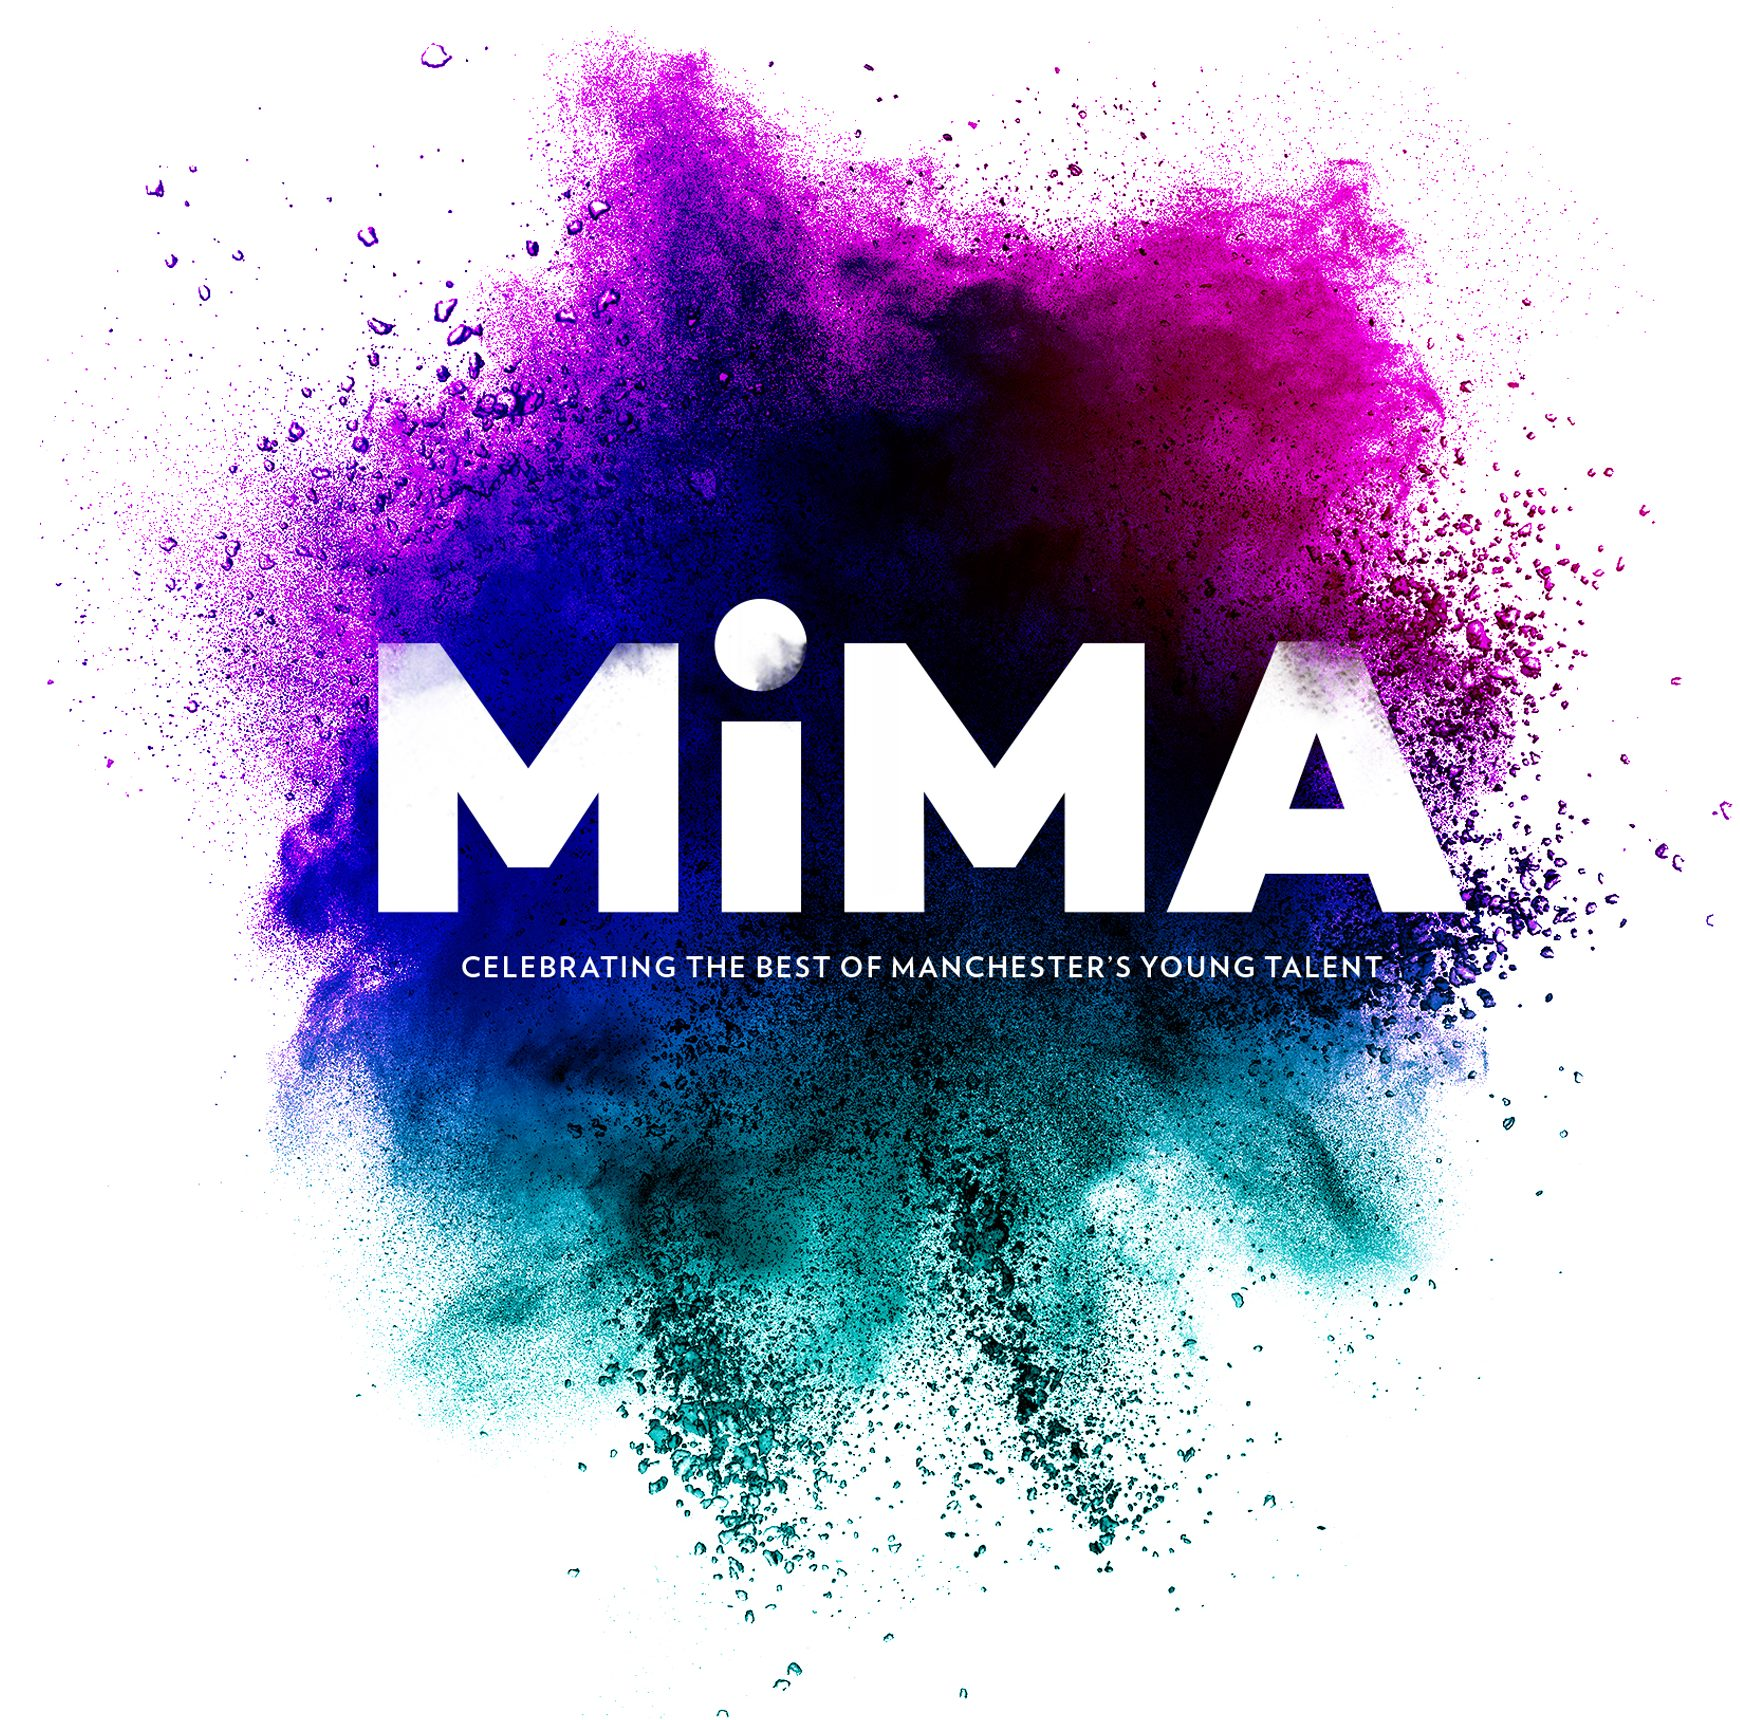 Mima Name Mima 2020 Back Bigger Than Ever Pro Manchester